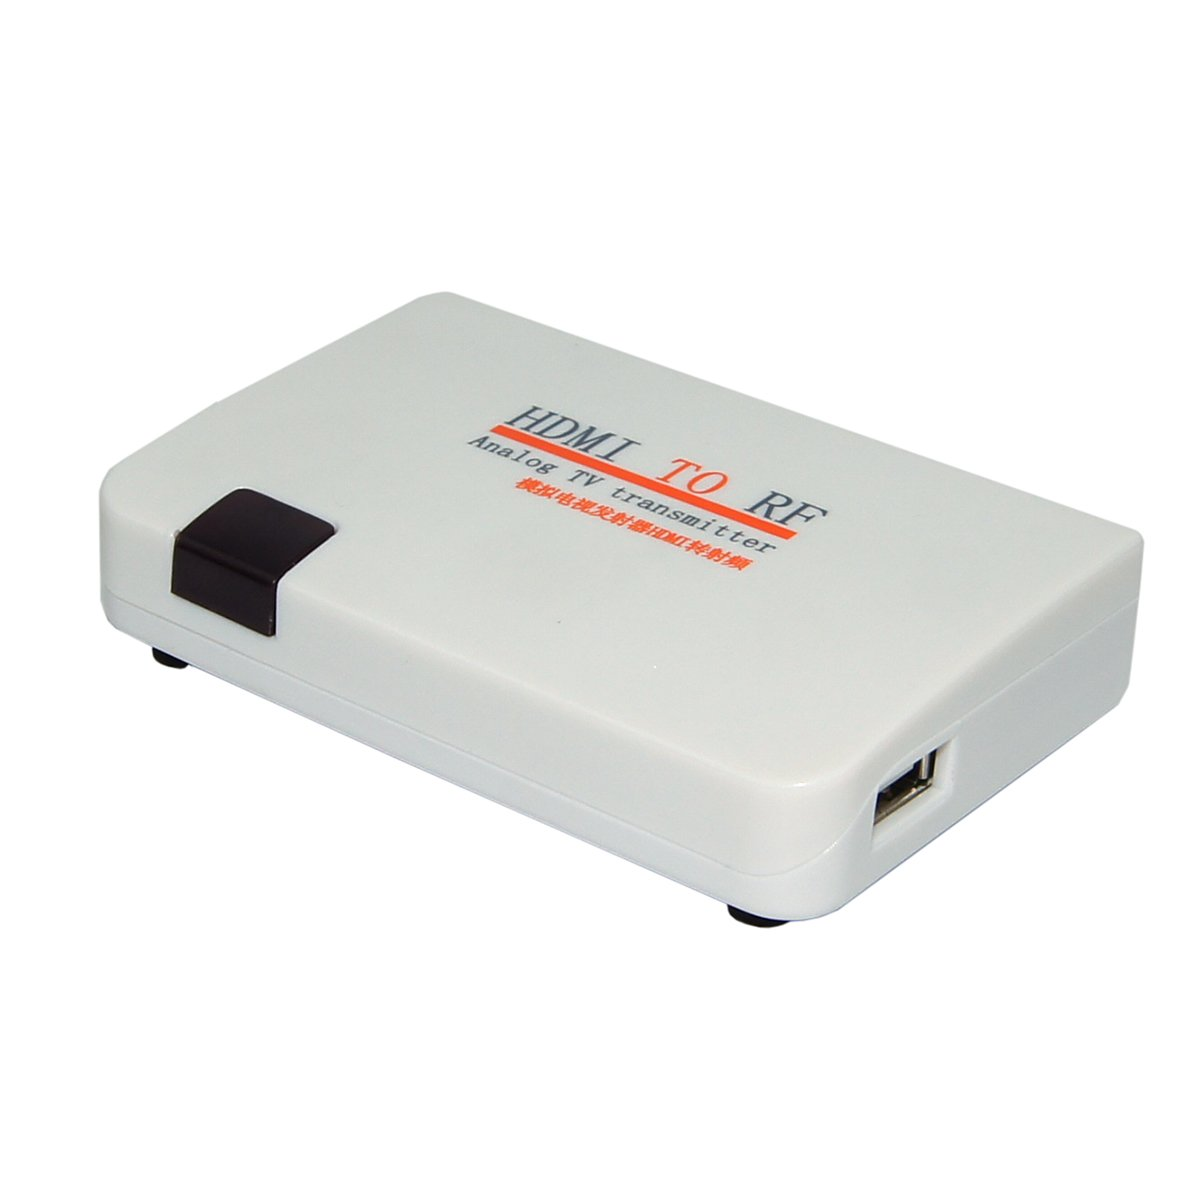 E-SDS HDMI to RF Coaxial Converter Box with Remote Control, HDMI to Coaxial Analog Signal Support Zoom Function